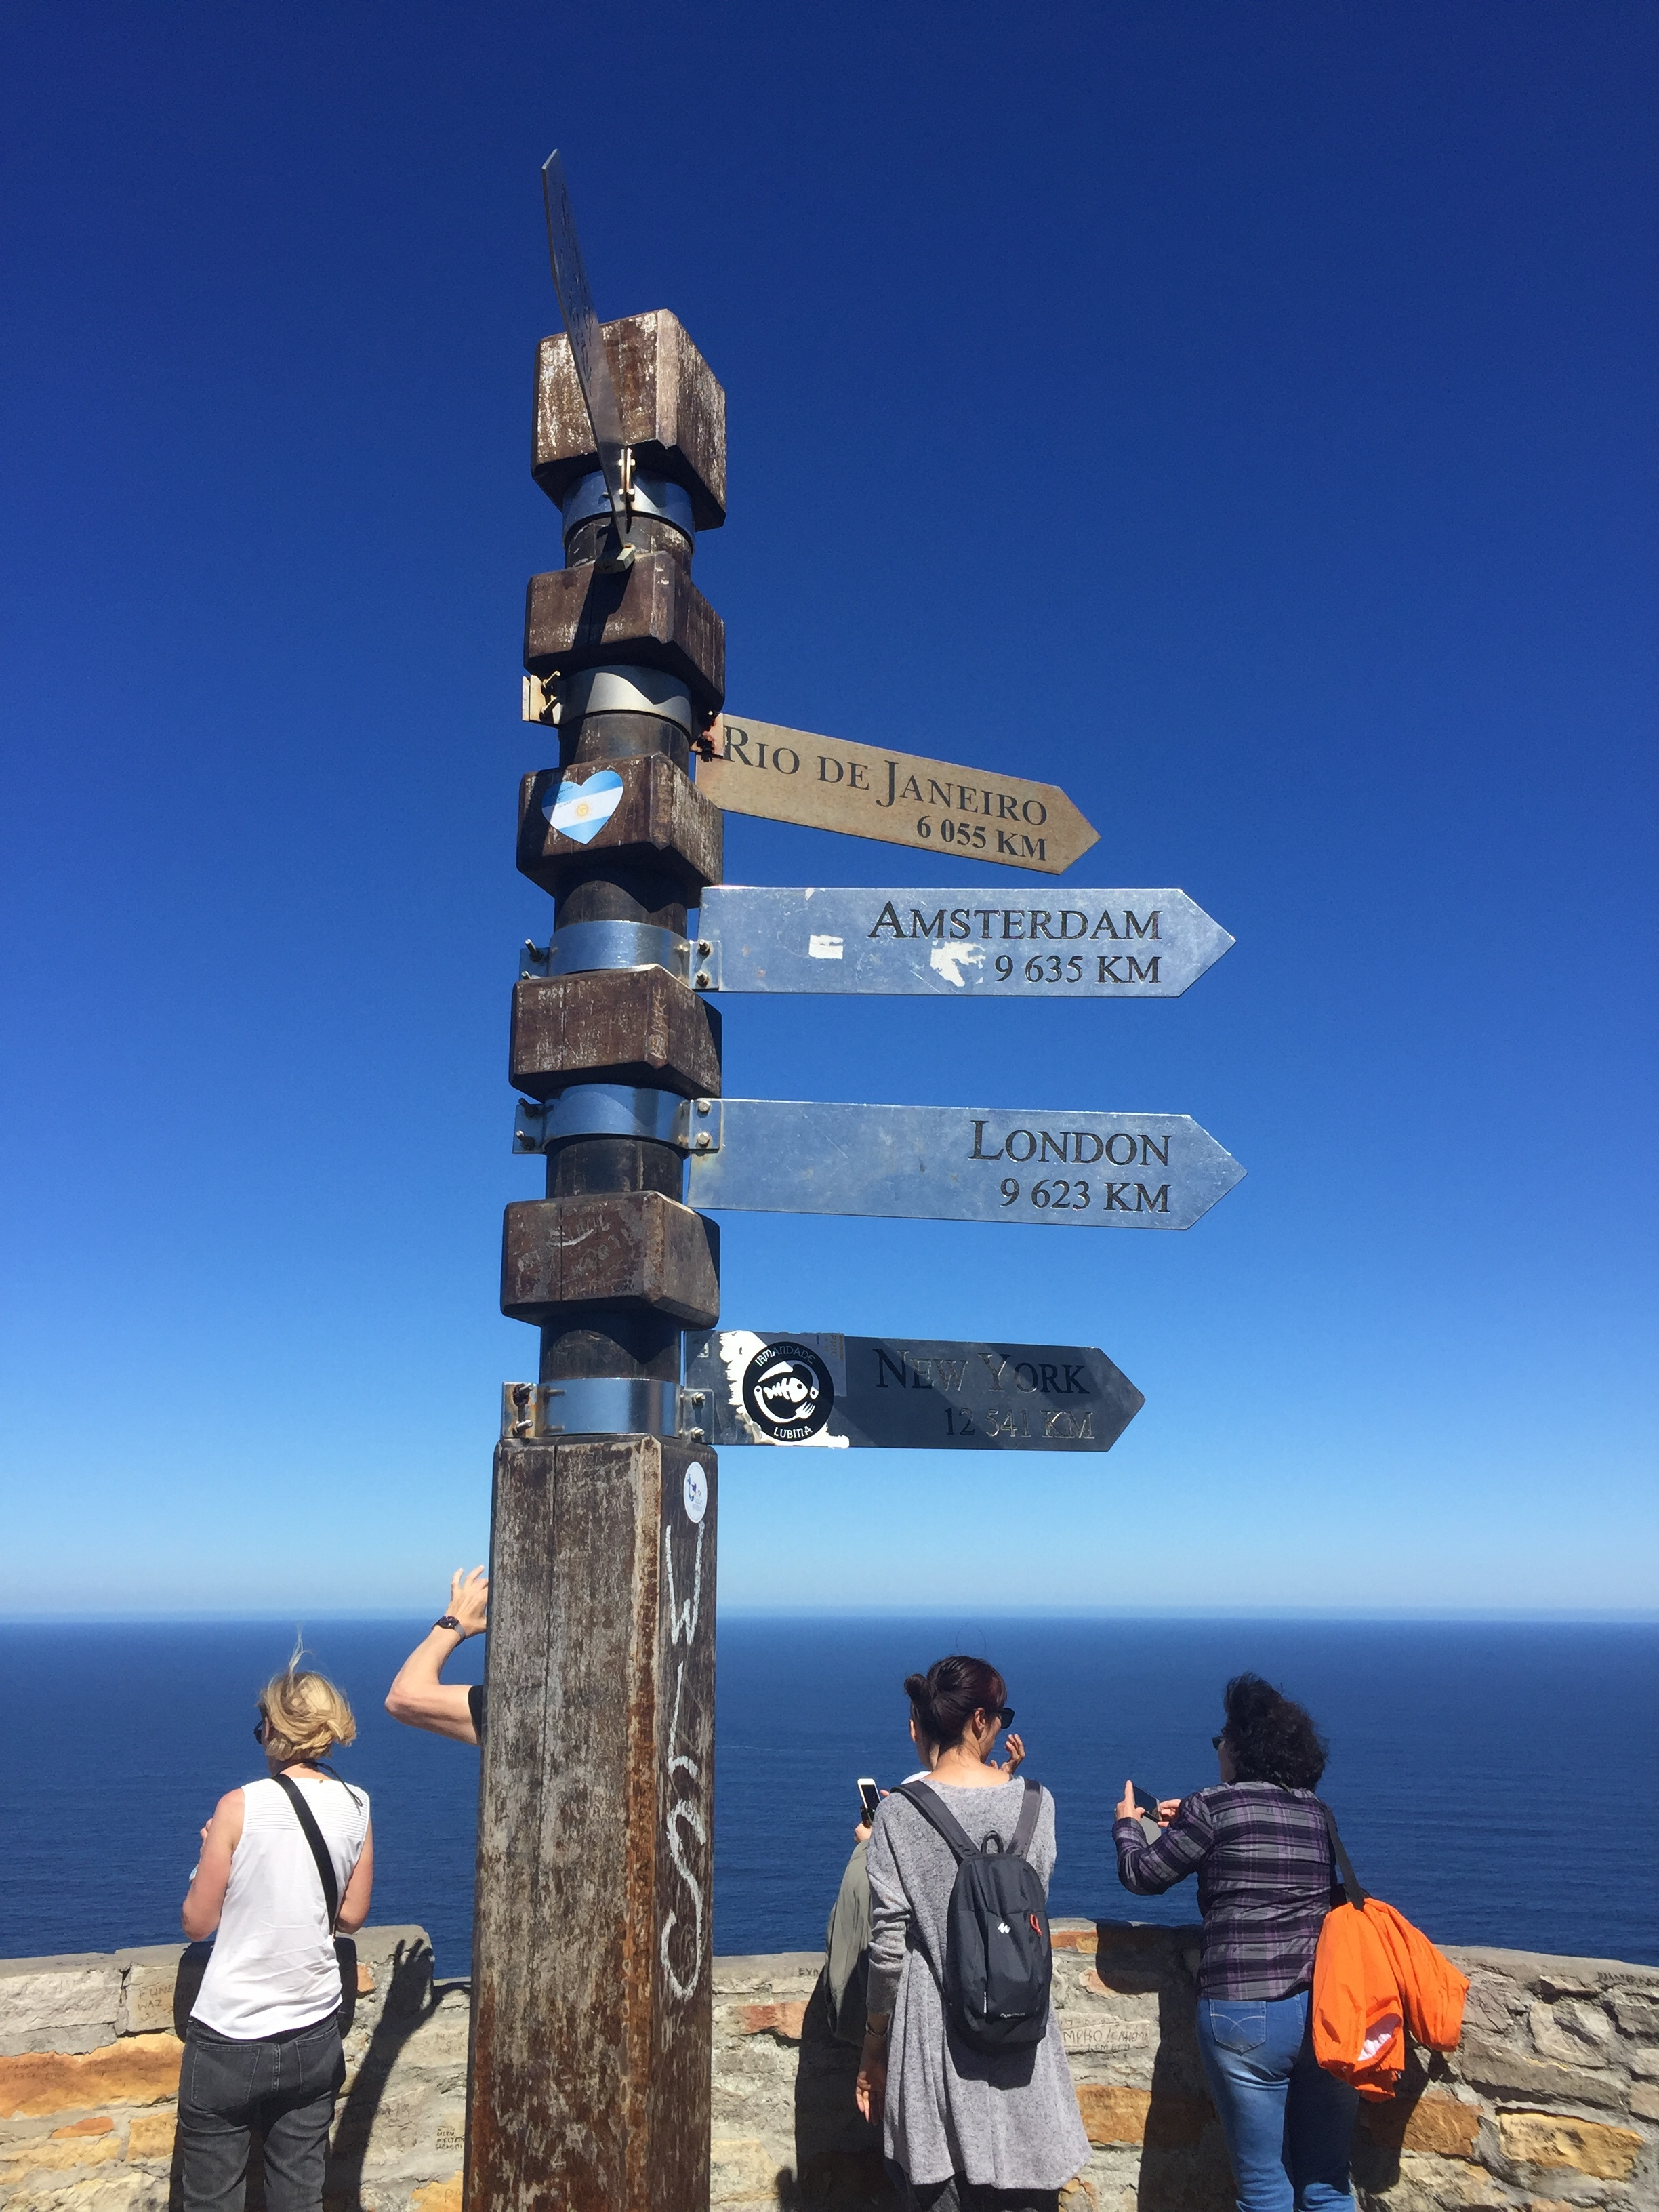 The last street sign: Cape of Good Hope.